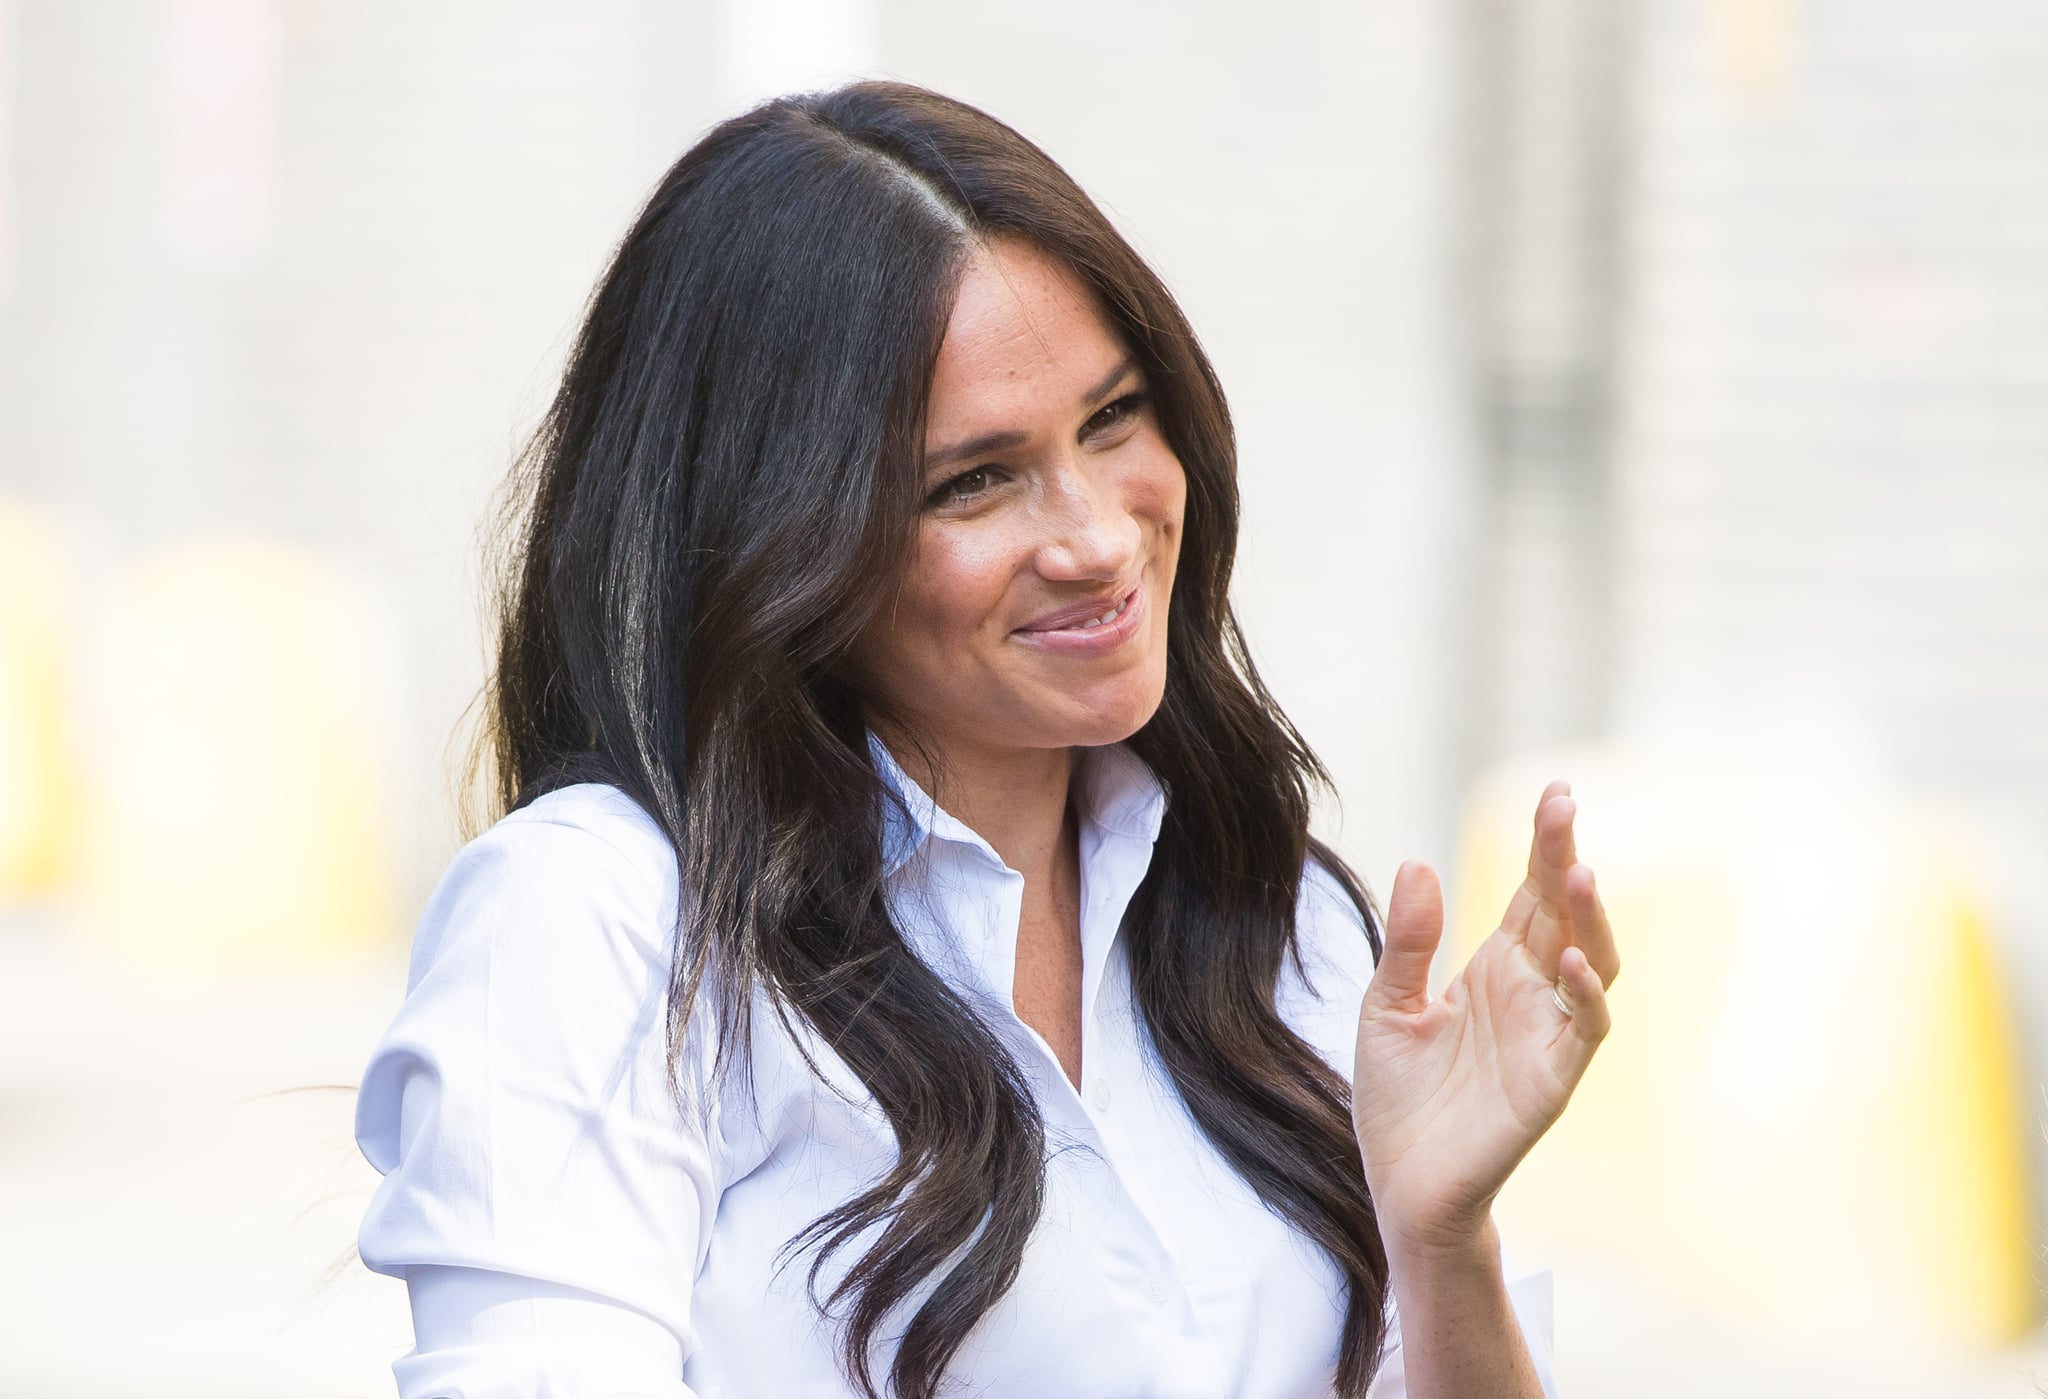 LONDON, ENGLAND - SEPTEMBER 12: Meghan, Duchess of Sussex launches the Smart Works capsule collection on September 12, 2019 in London, England. Created in September 2013 Smart Works exists to help unemployed women regain the confidence they need to succeed at job interviews and return to employment. (Photo by Samir Hussein/WireImage)